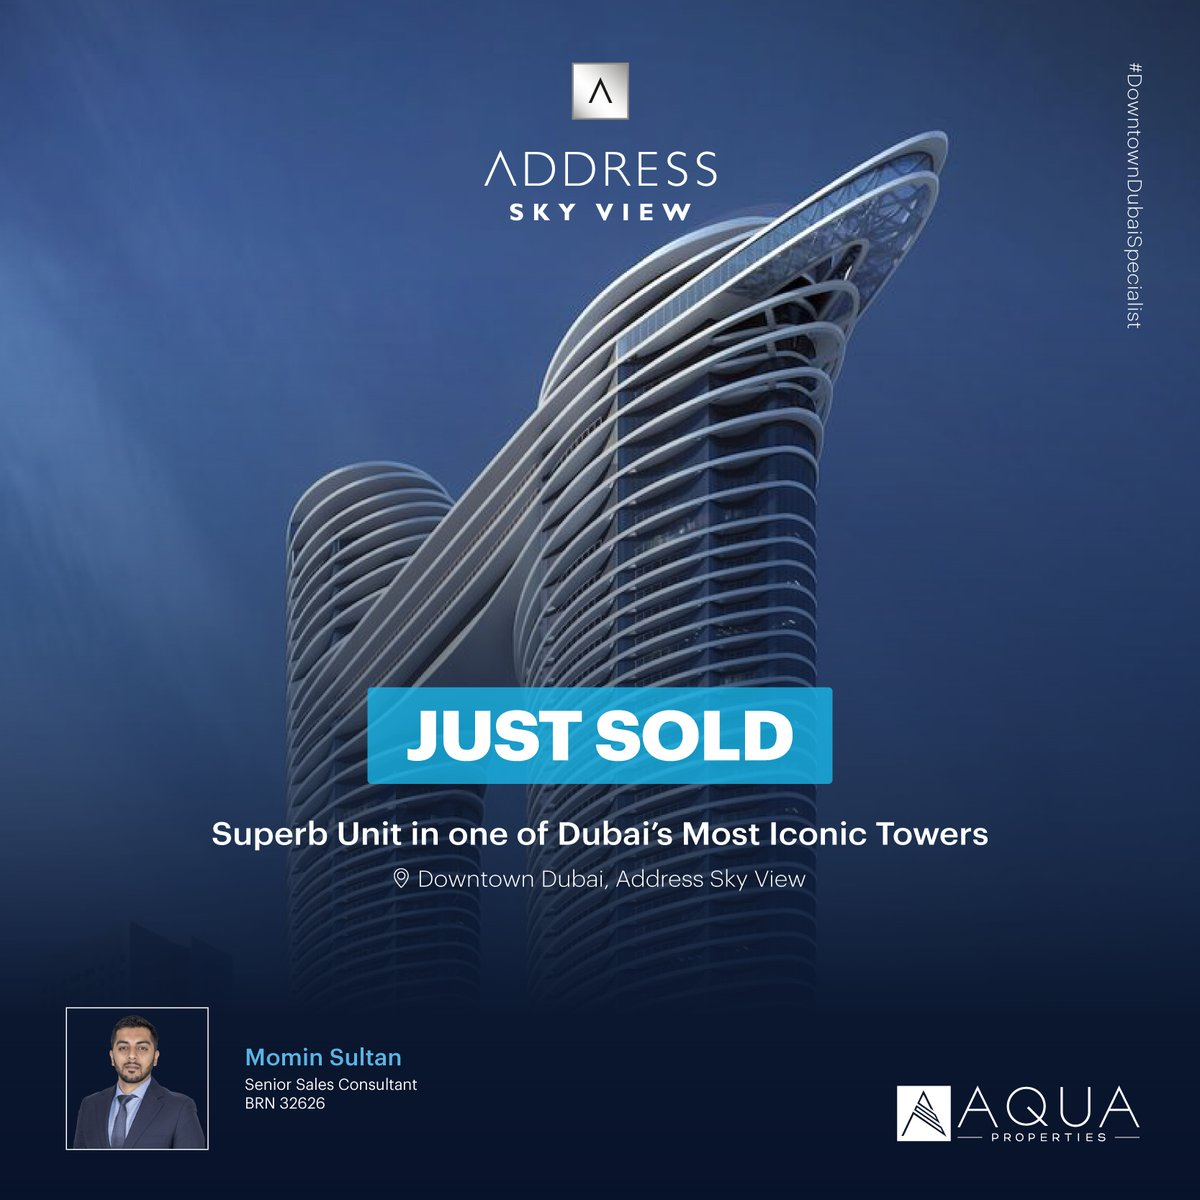 Congratulations to our #DowntownDubaiSpecialist Momin Sultan for another impressive sales deal. Now is the best time to secure a home of your dreams or a lucrative investment opportunity.#DowntownDubai #RealEstate #DubaiRealEstate #InvestmentProperty #InvestInDubai https://t.co/I2toJ5FDXo